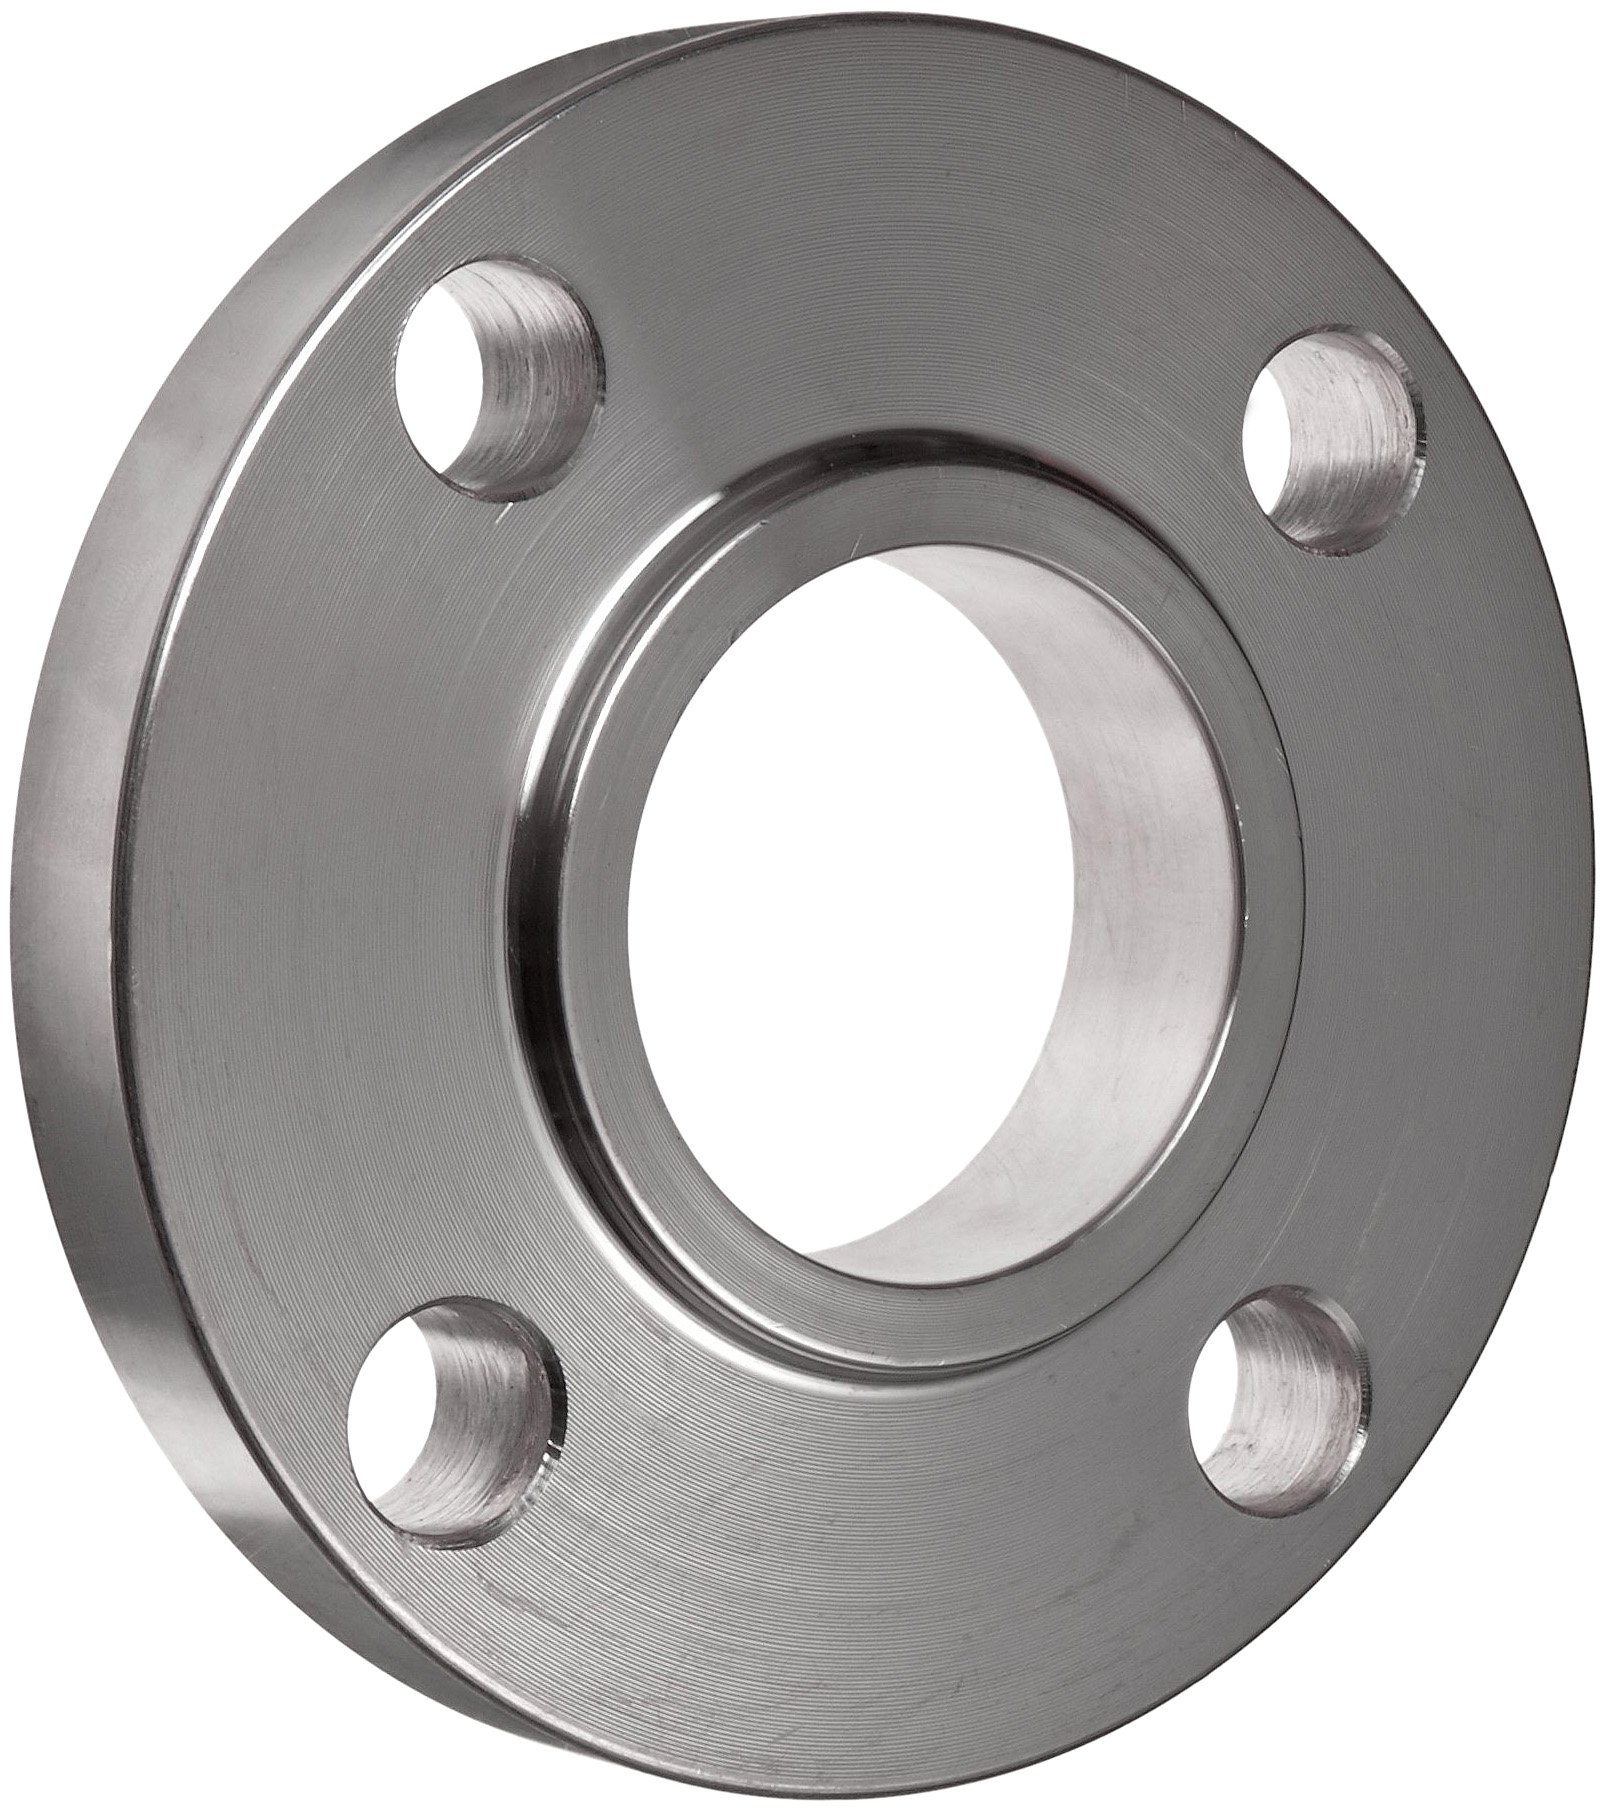 Stainless Steel 304/304L Pipe Fitting, Flange, Slip-On, Class 150, 6'' Pipe Size